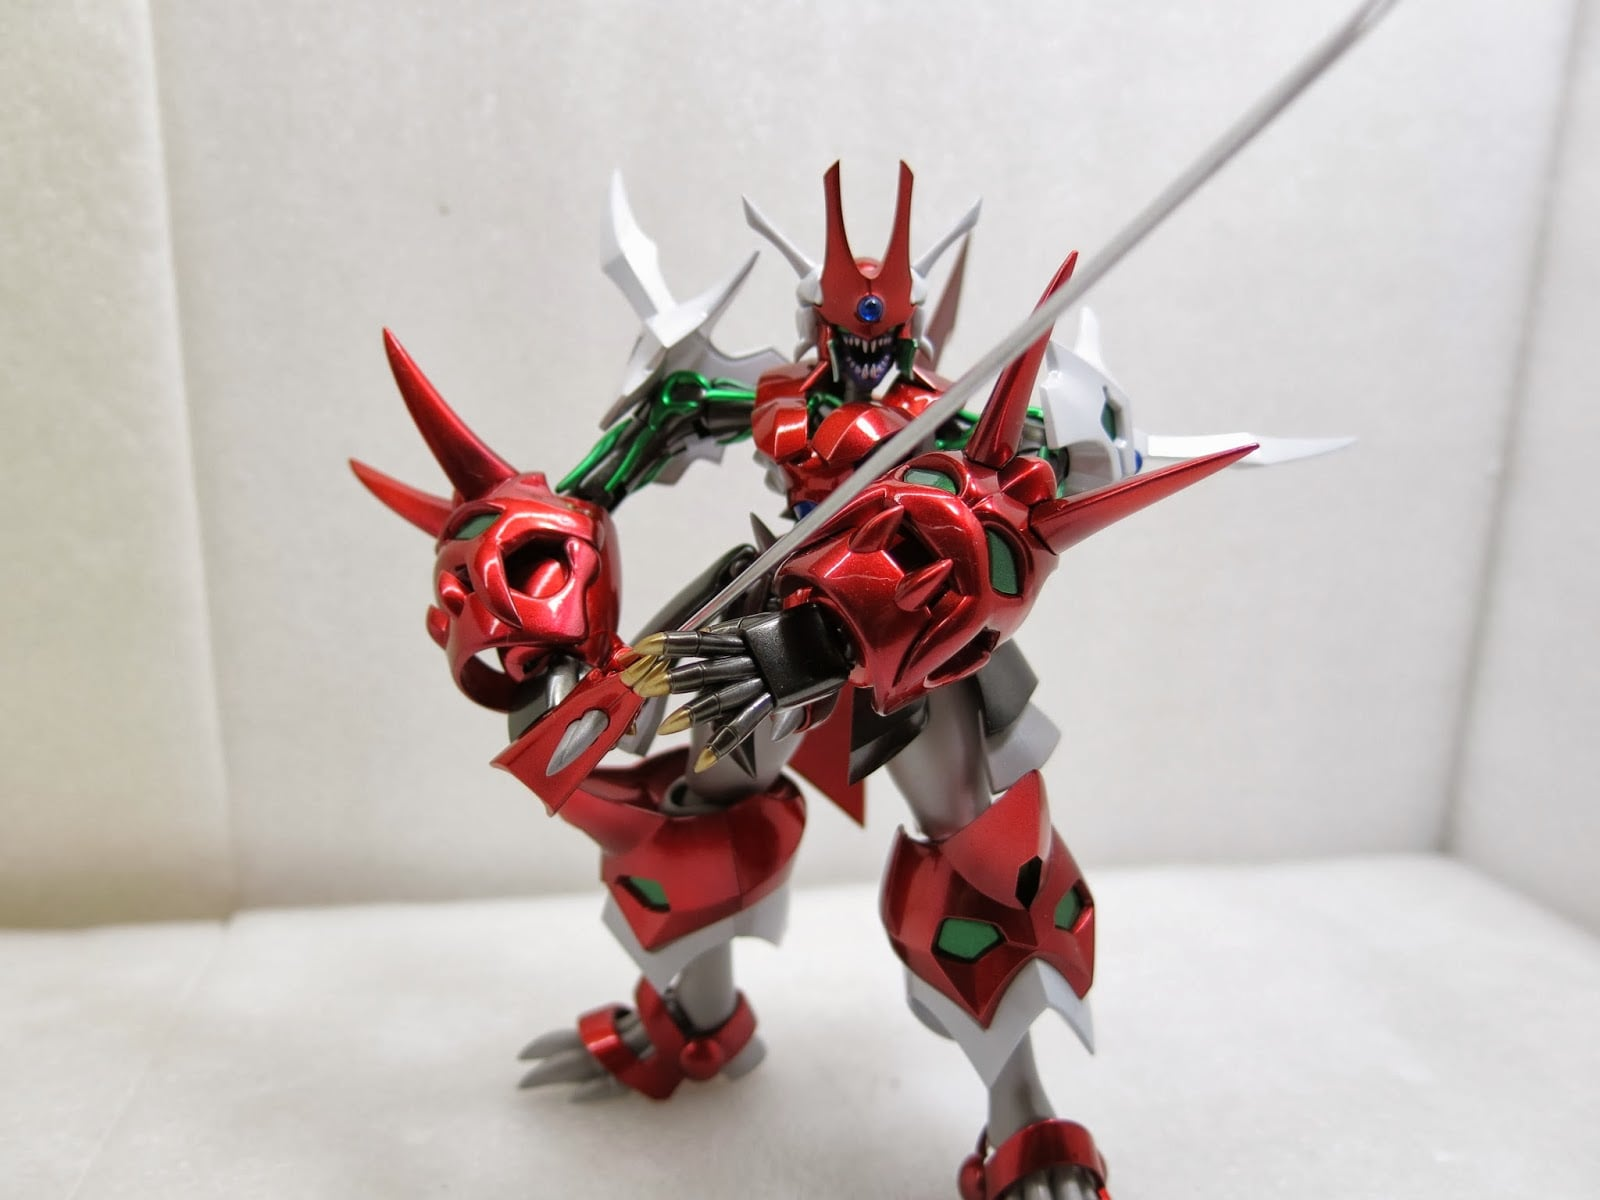 Toy Model Ghost Mask 05 約瑟夫模型:鬼面 SRG-S034~PERSON-LICHKEIT 超級機器人大戰 OG